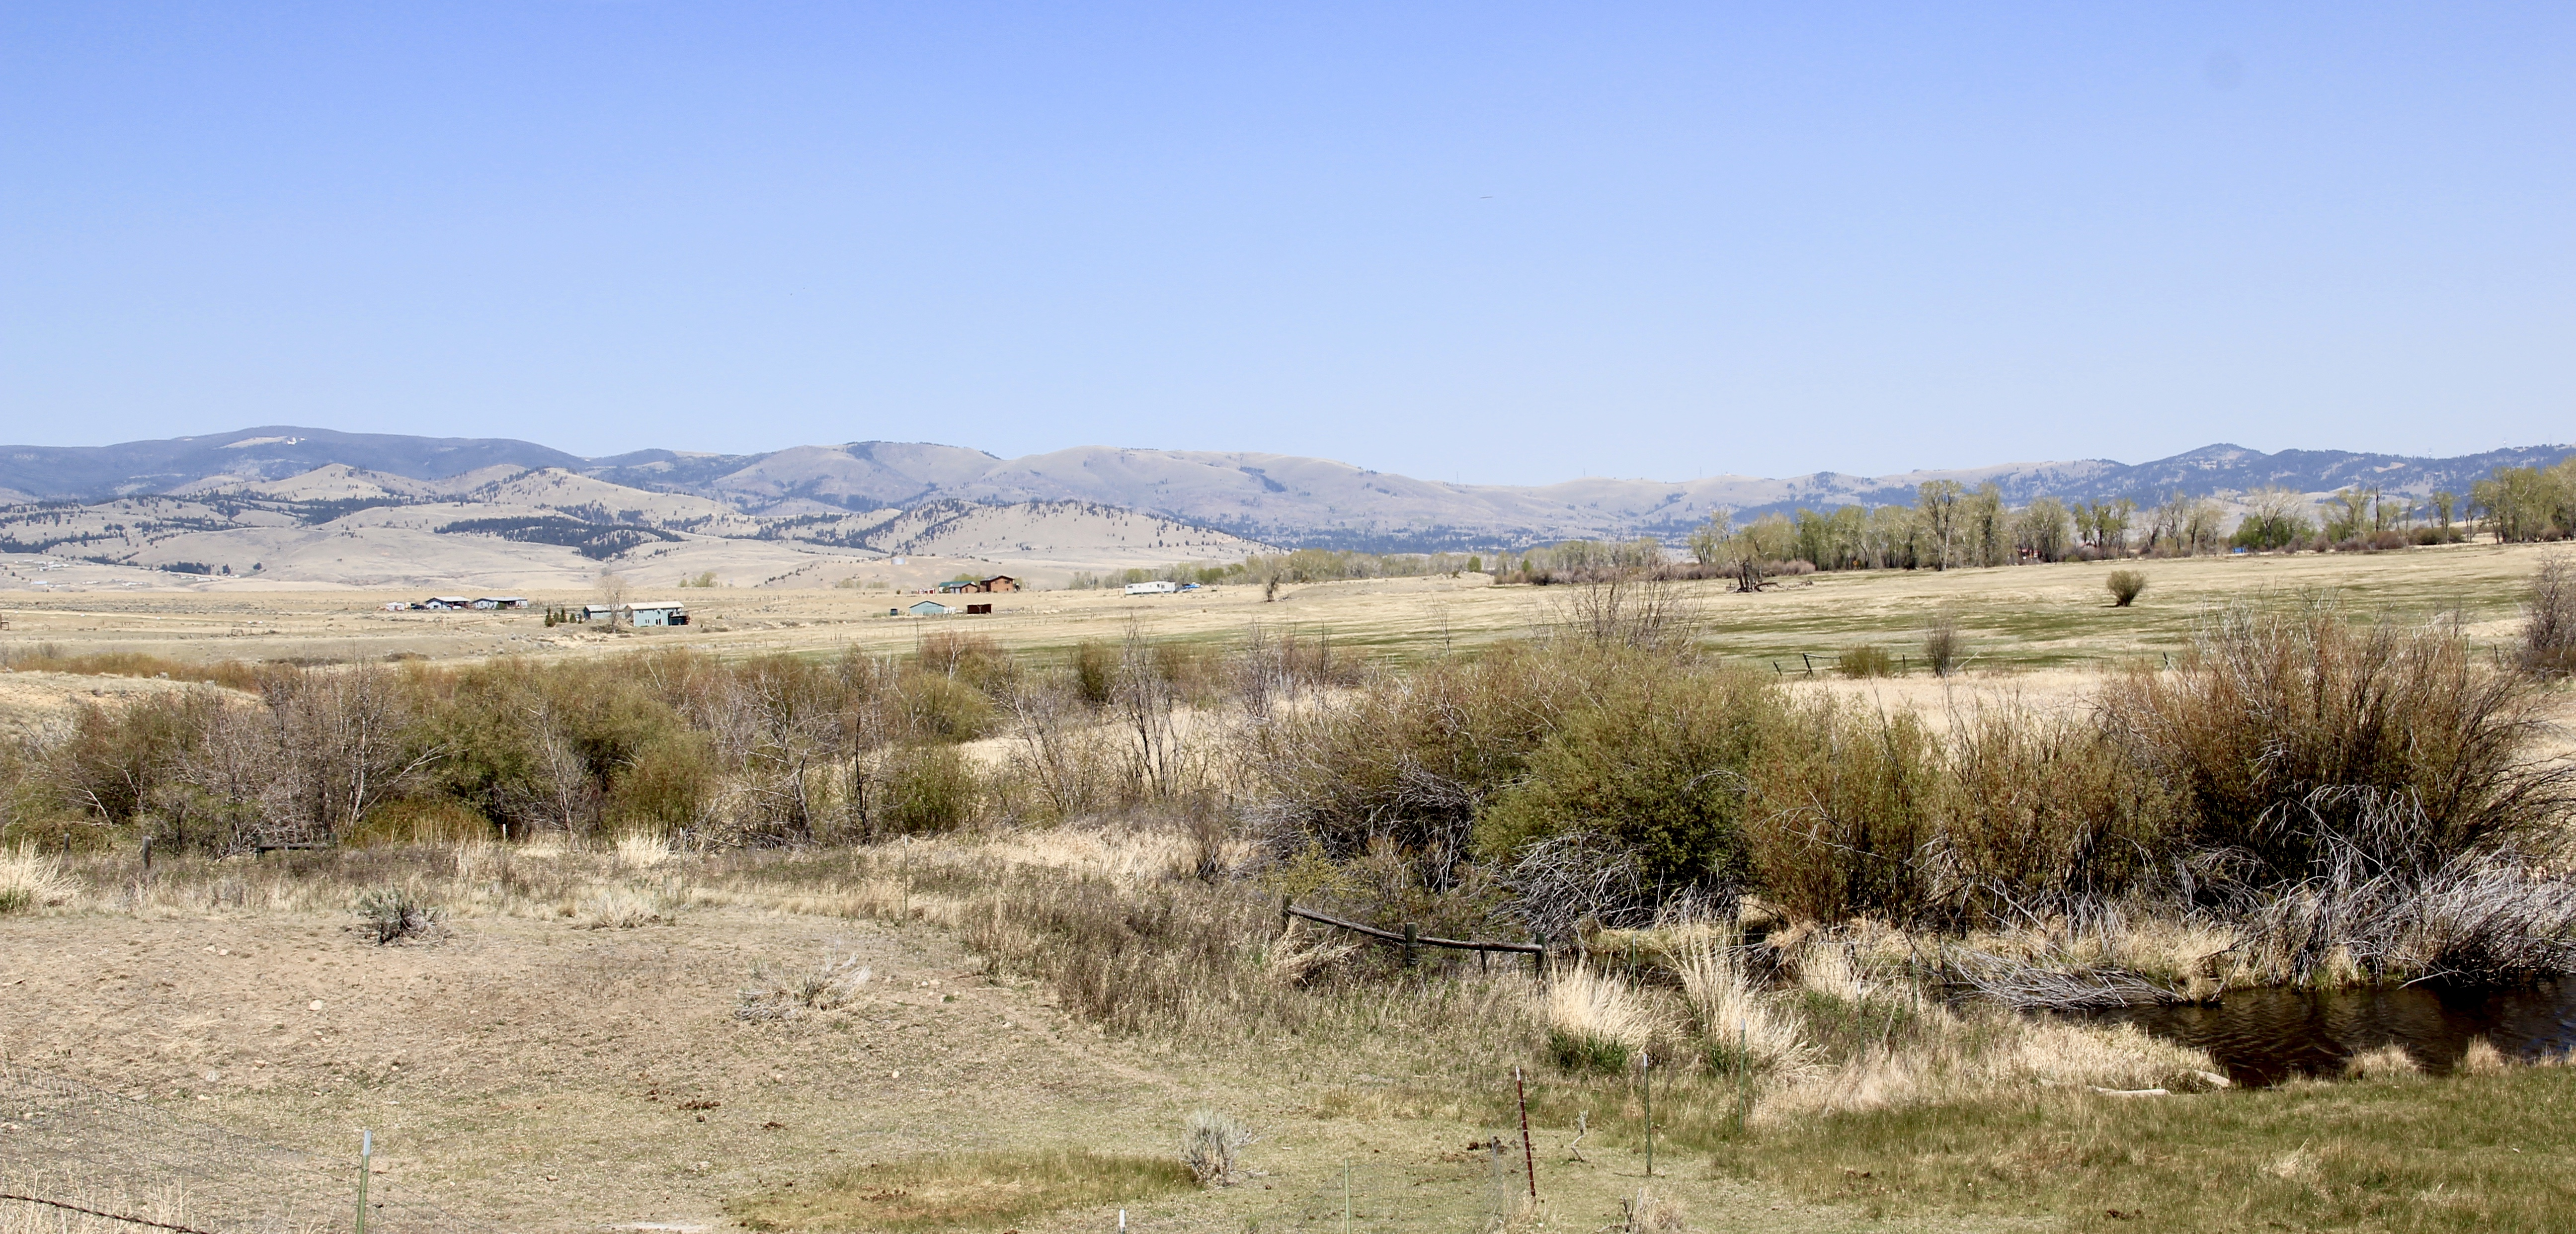 Boulder Valley N from hot springs, MT 69 – Version 2